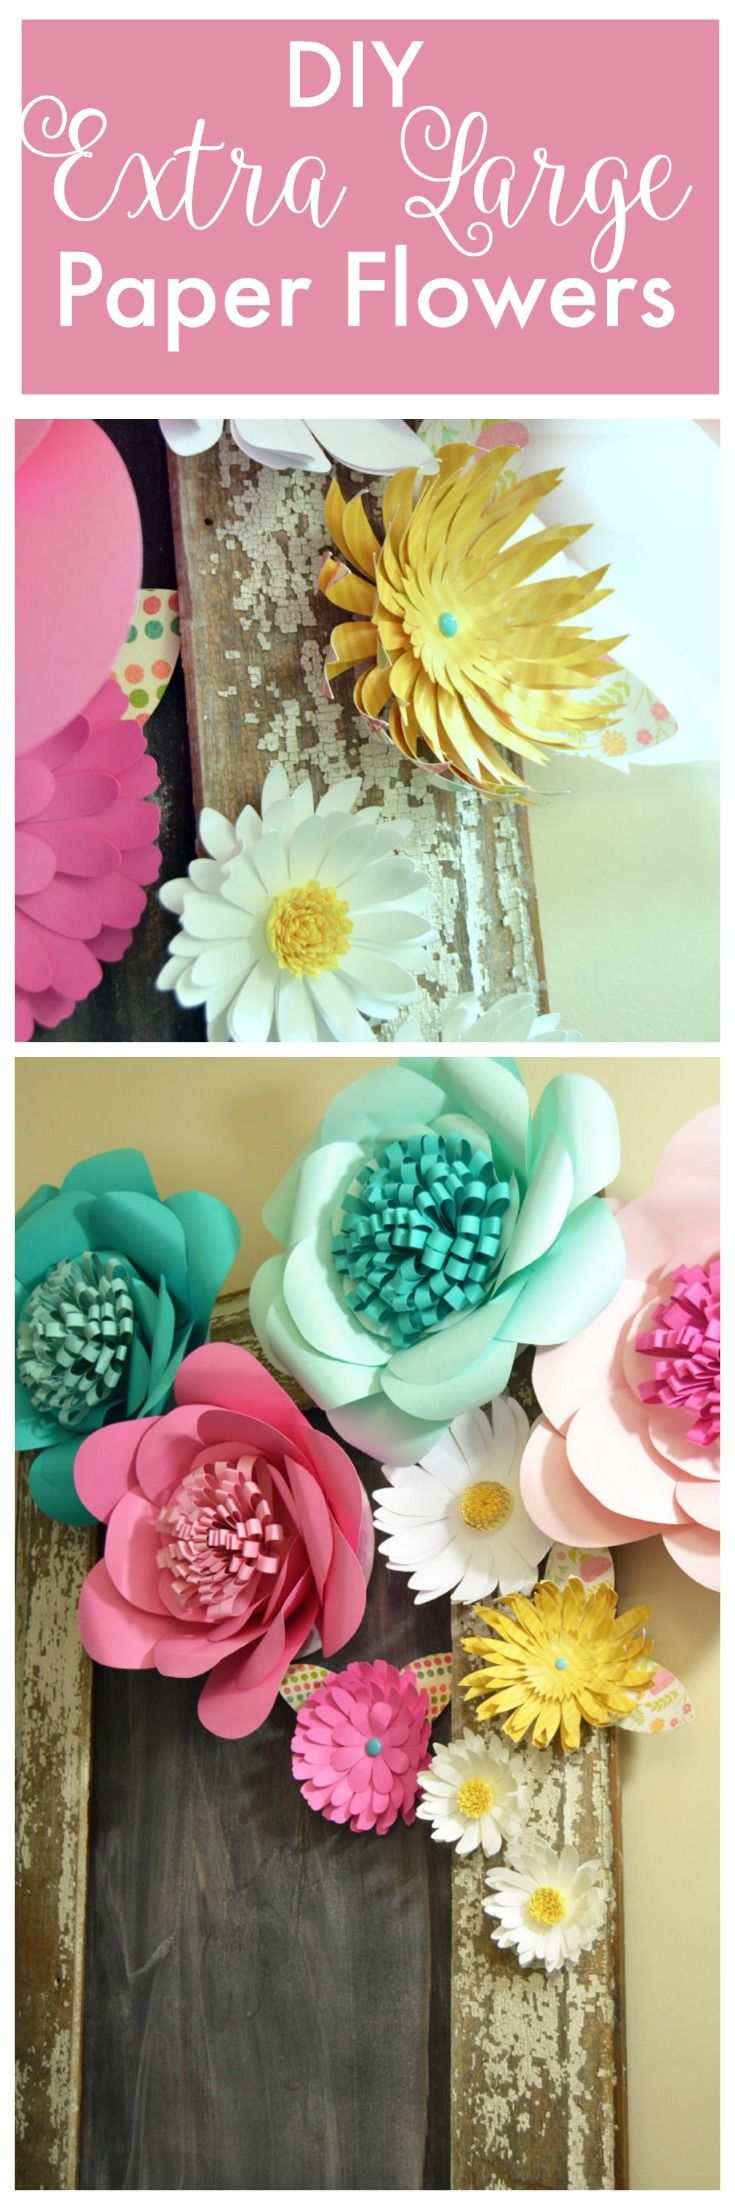 How to make scrapbook in facebook - How To Make Huge Paper Flowers